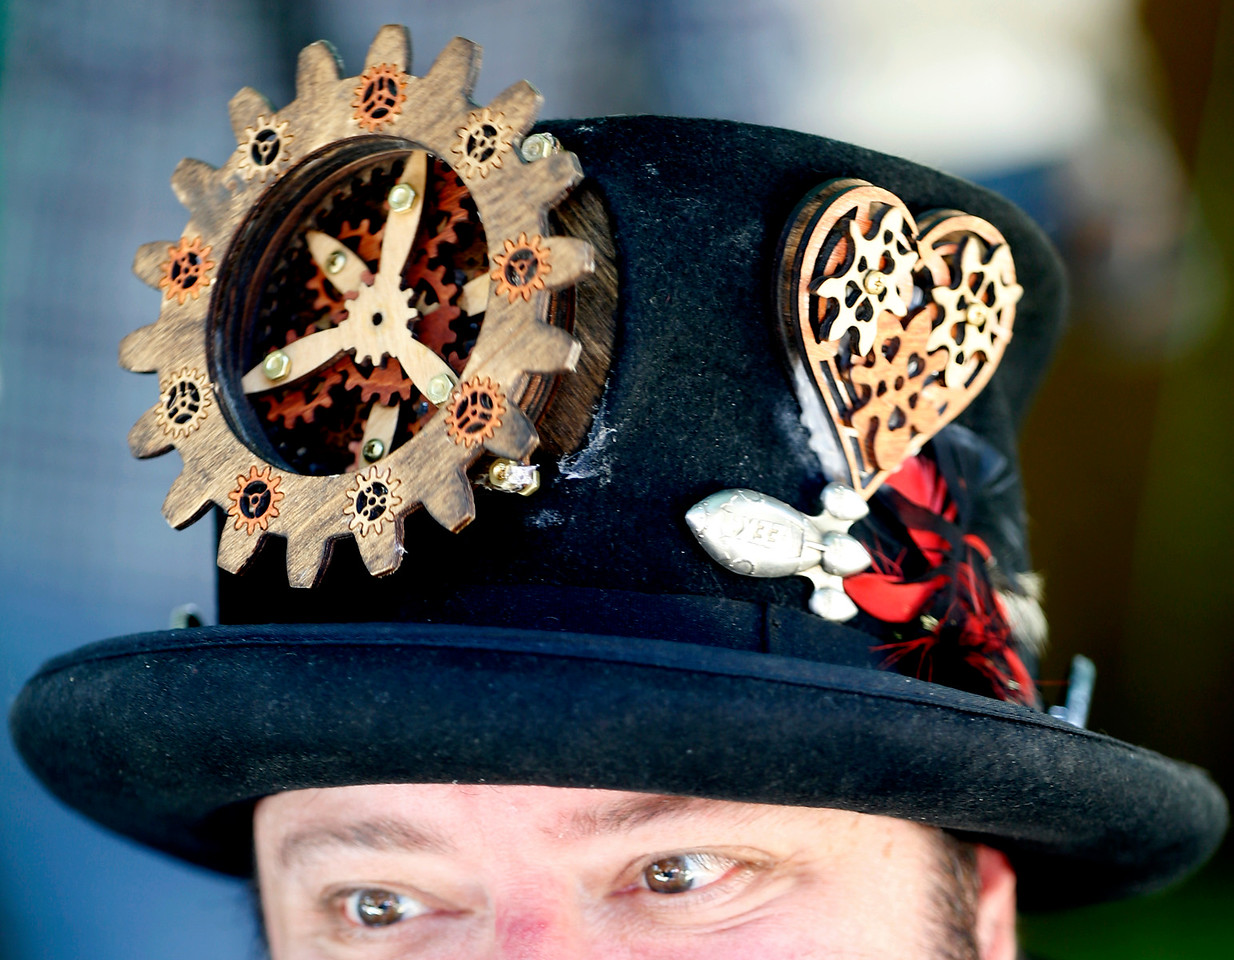 Greg Price, of Steamy Tech wears a gear top hat he created at the second annual San Jose Mini Maker Faire at History San Jose Park in San Jose, Calif., on Sunday, September 4, 2016. (Josie Lepe/Bay Area News Group)